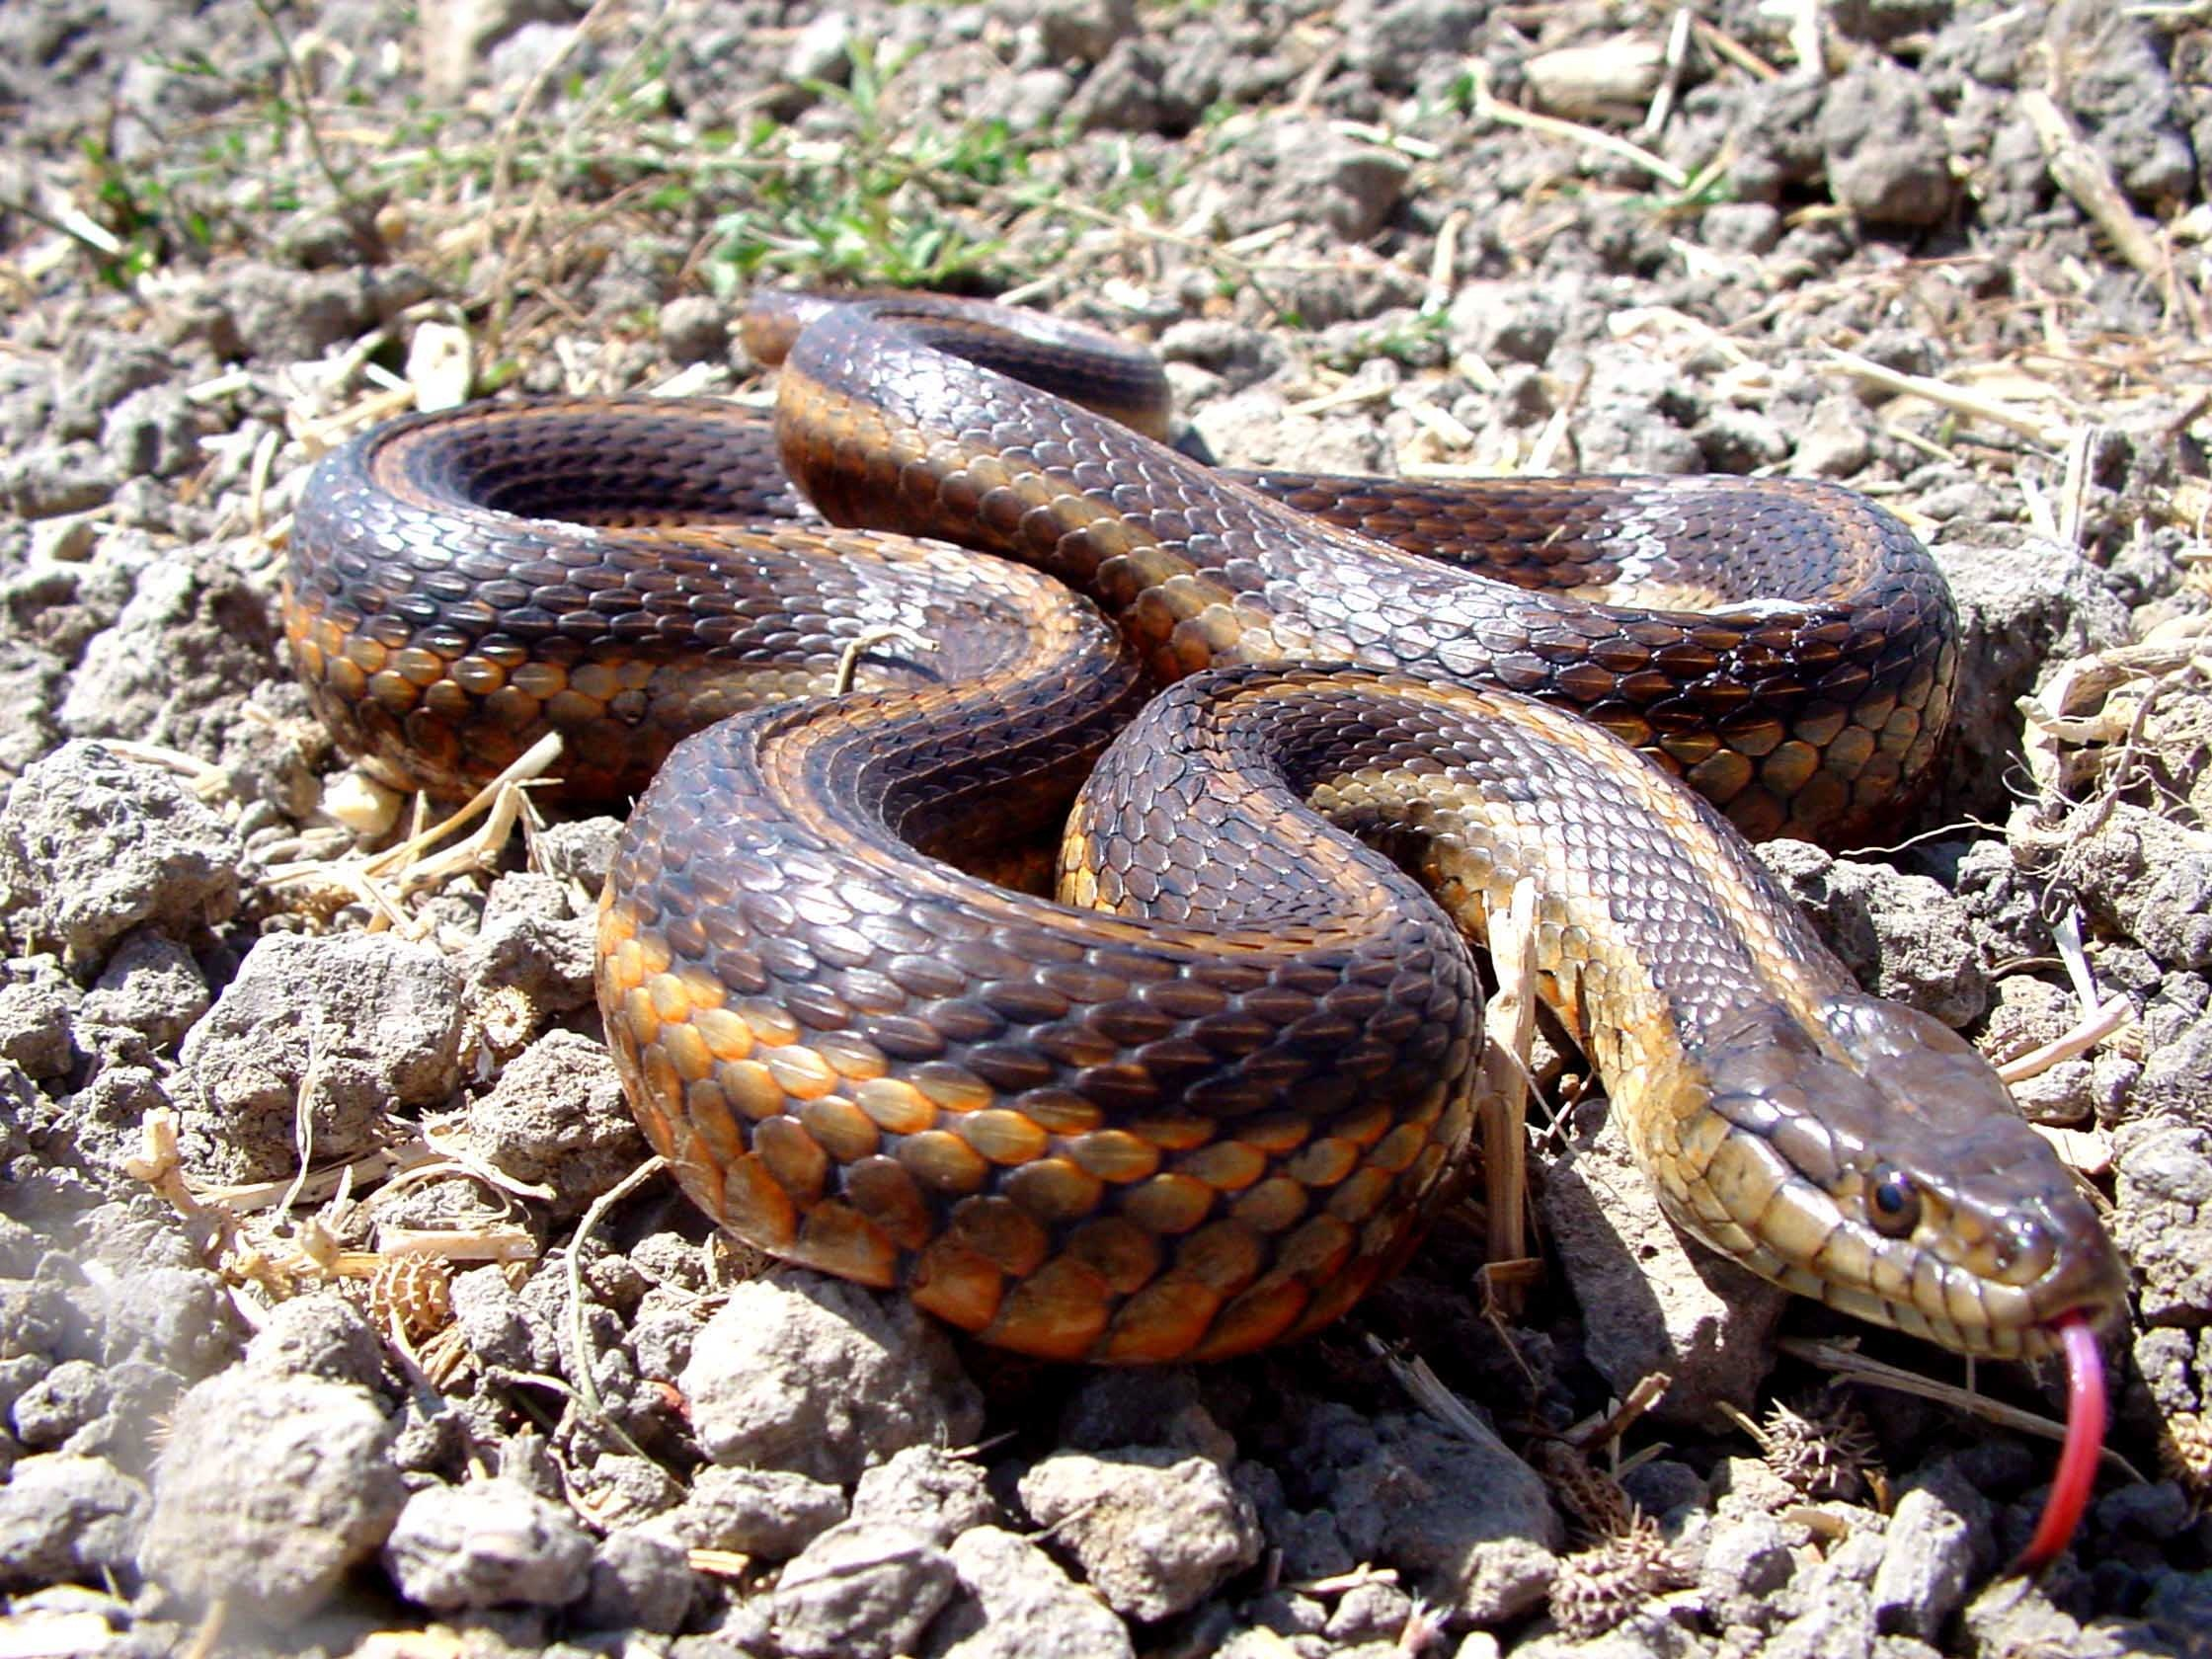 The giant garter snake is listed as a threatened species at the state and federal levels. It depends on water both to find meals and avoid becoming one. (Eric C. Hansen)